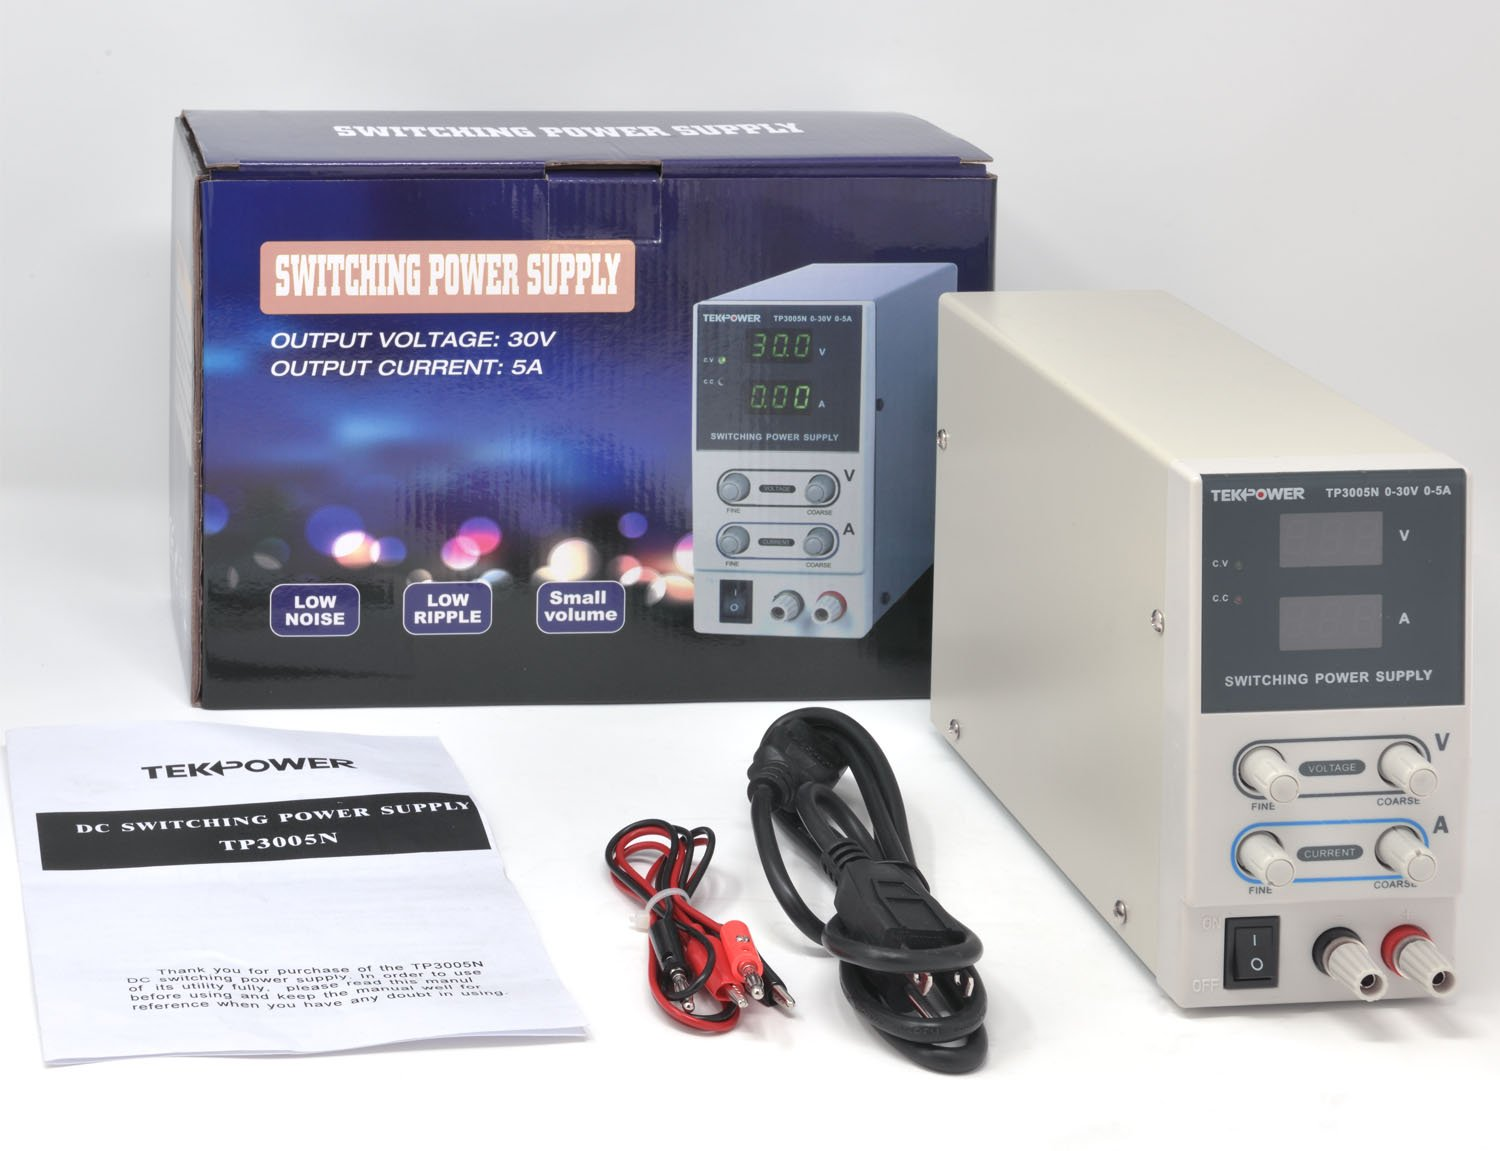 Tekpower Tp3005n Regulated Dc Variable Power Supply 0 30v At Supplies Switching 5a Industrial Scientific